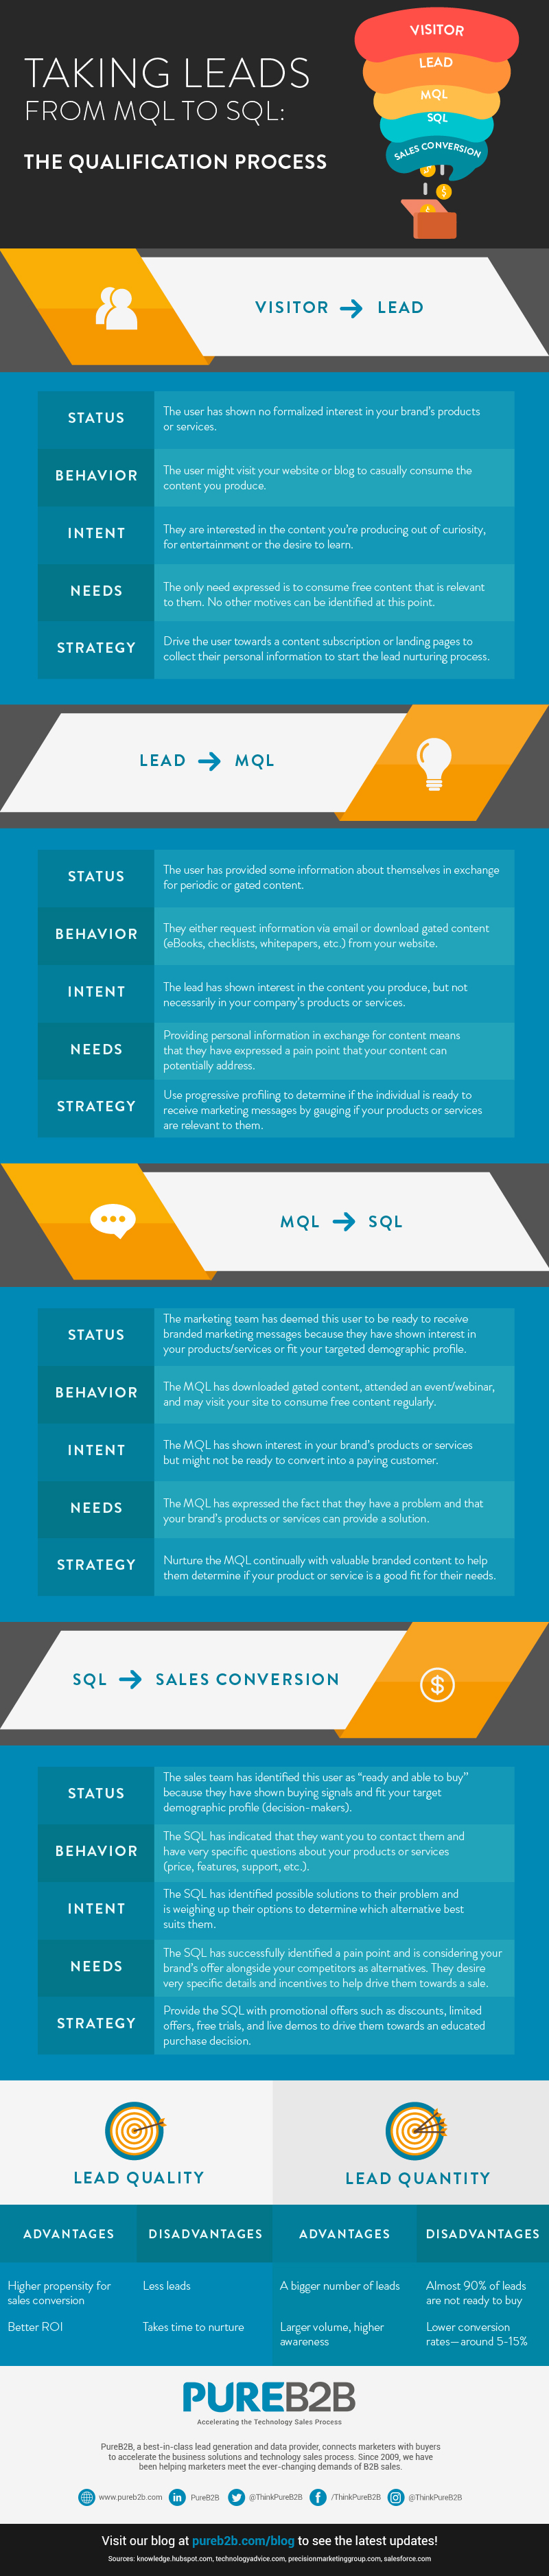 Taking Leads From MQL to SQL The Qualification Process Infographic